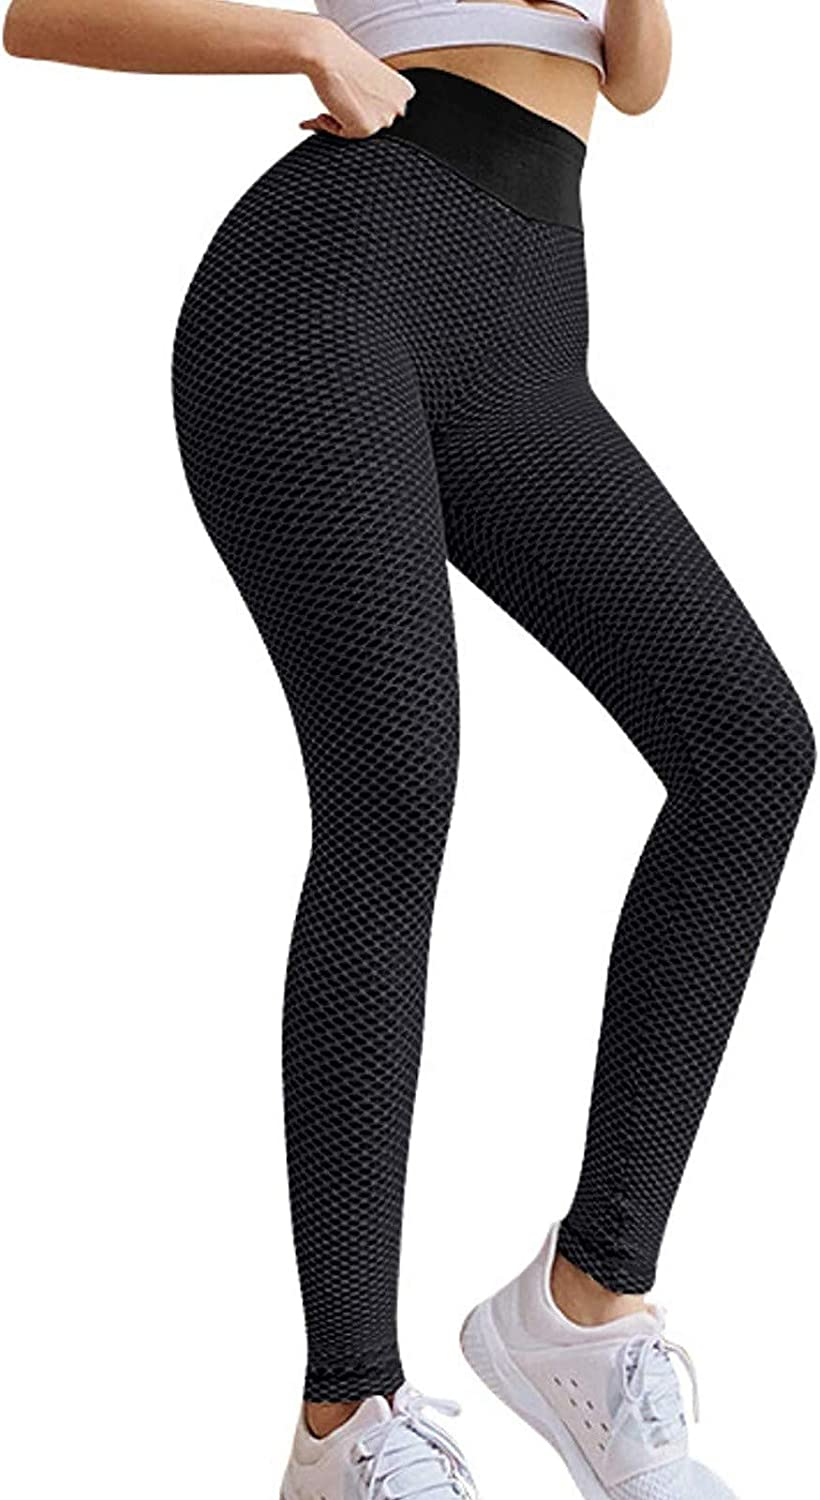 BEIBEIA Women's High Waisted Yoga Lifting Butt Shipping included Hip Pants Bubble Same day shipping